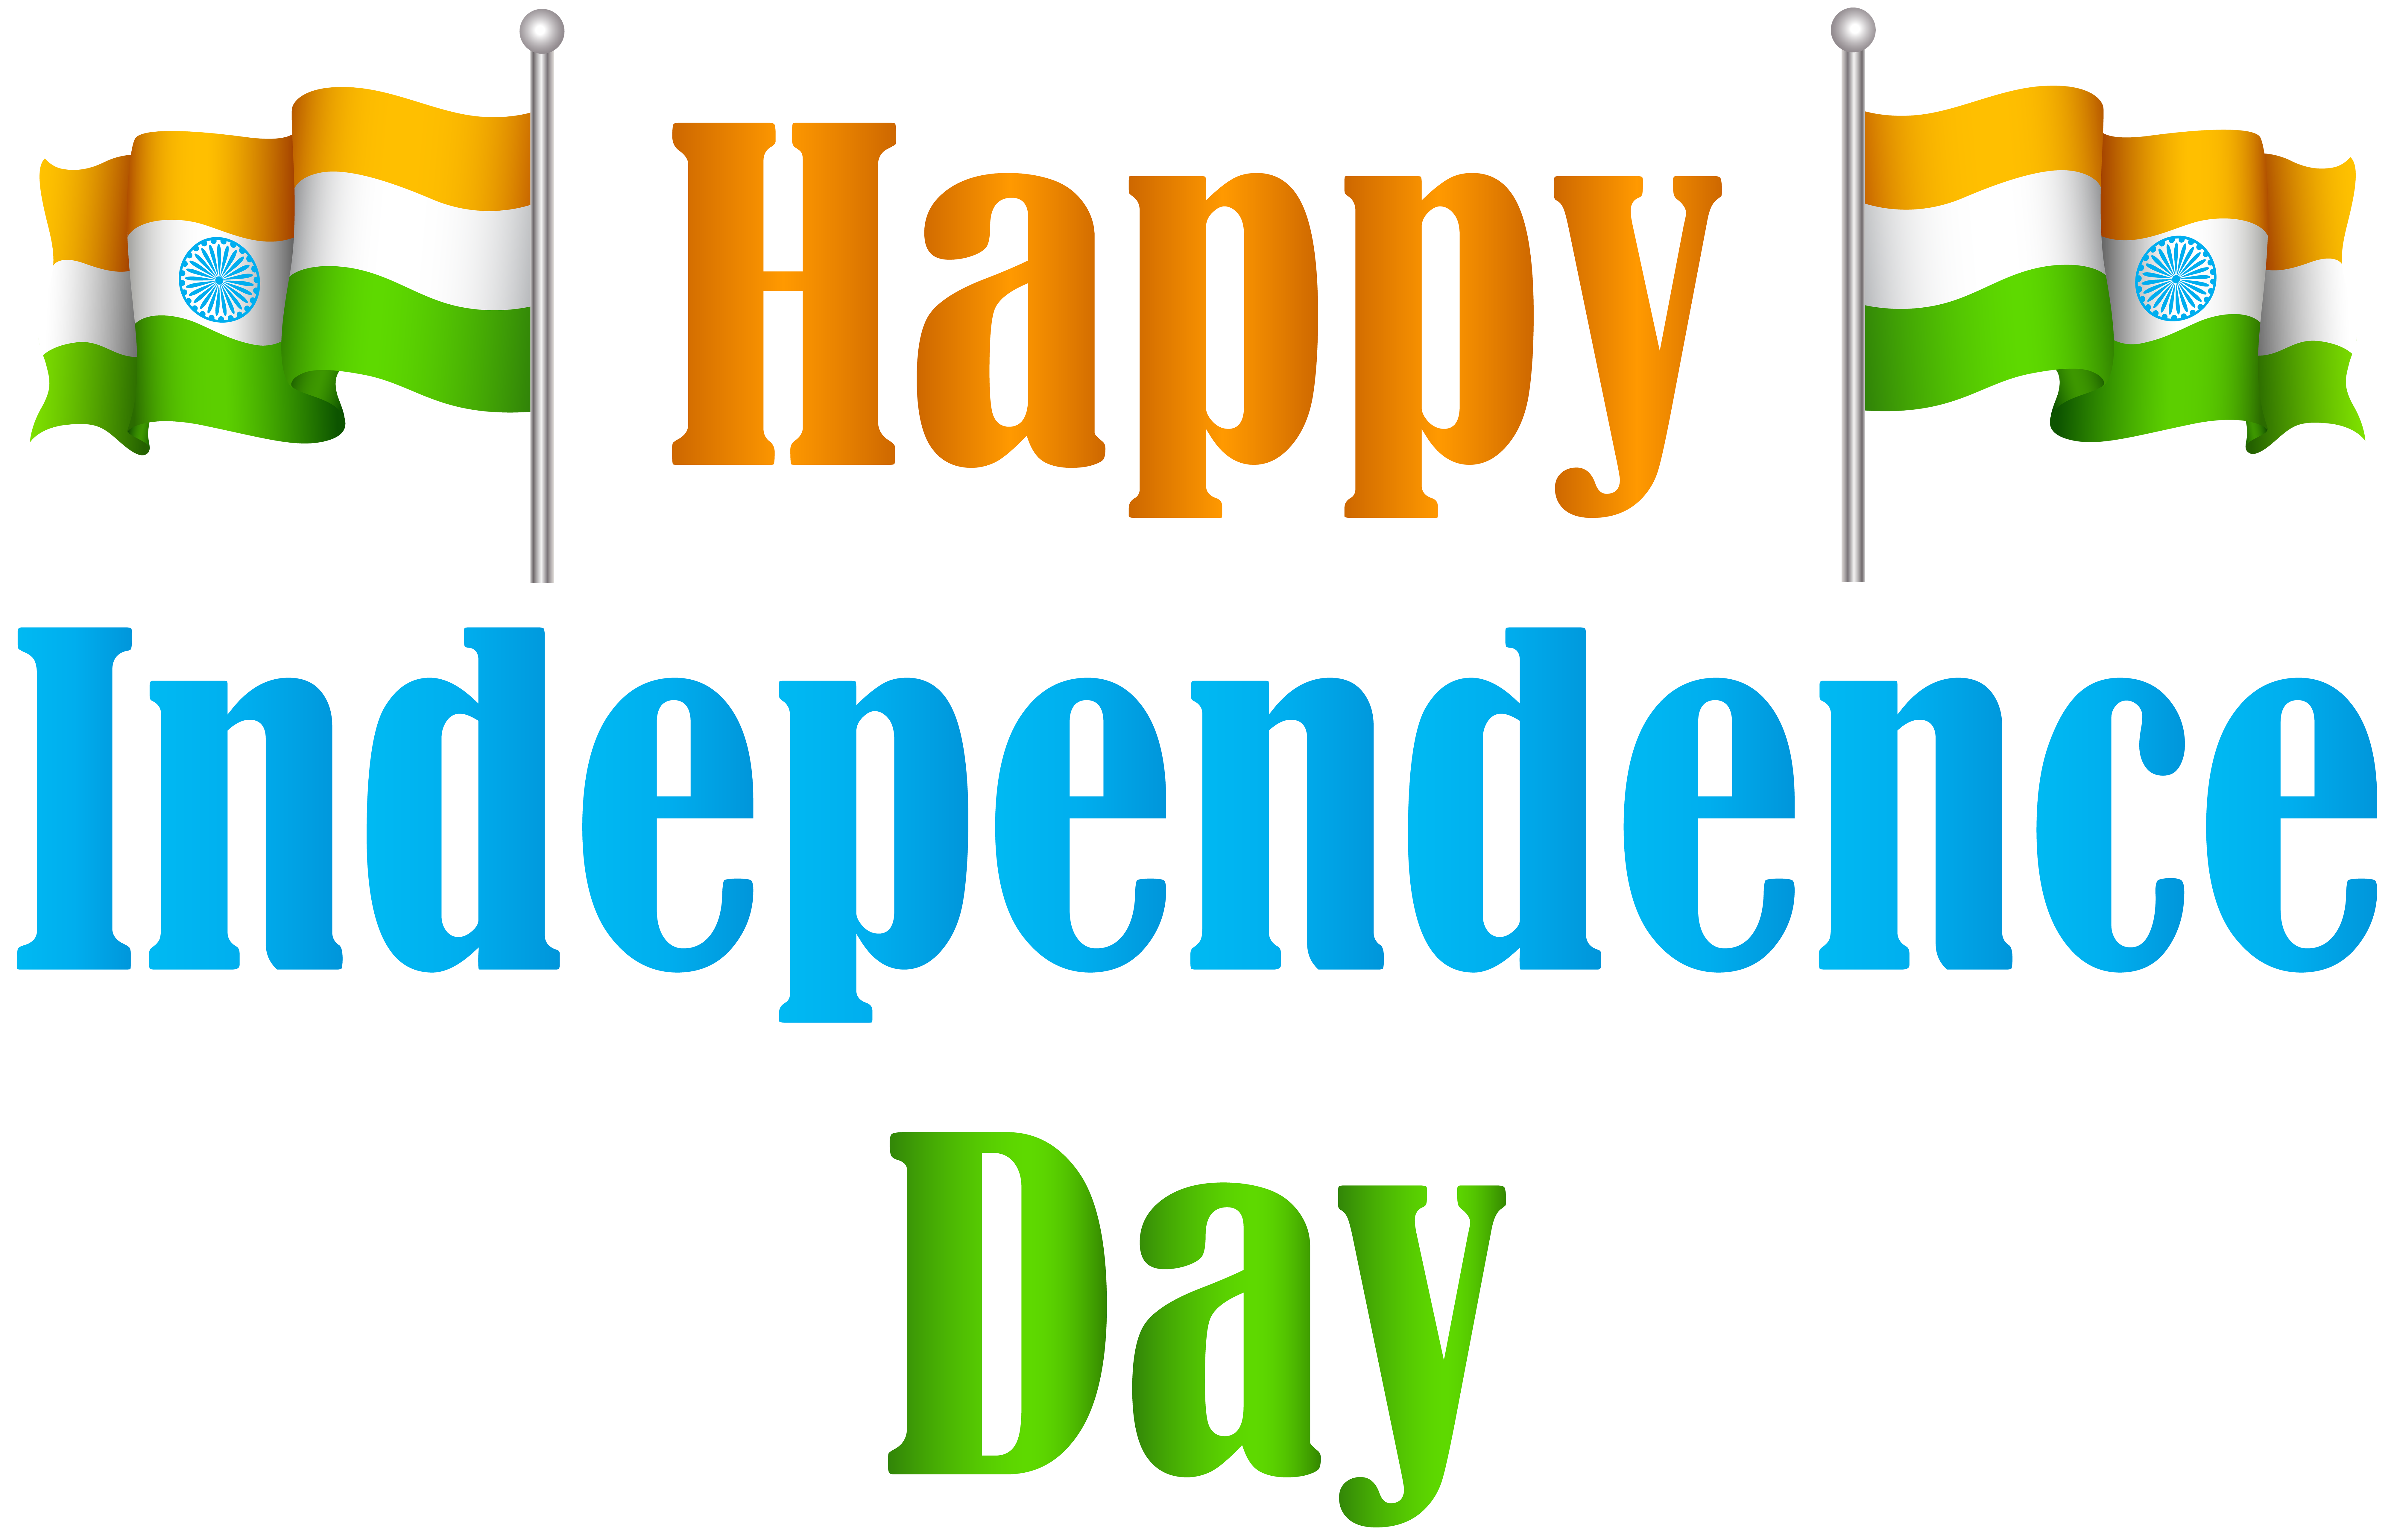 India Happy Independence Day Transparent PNG Clip Art Image ... free stock